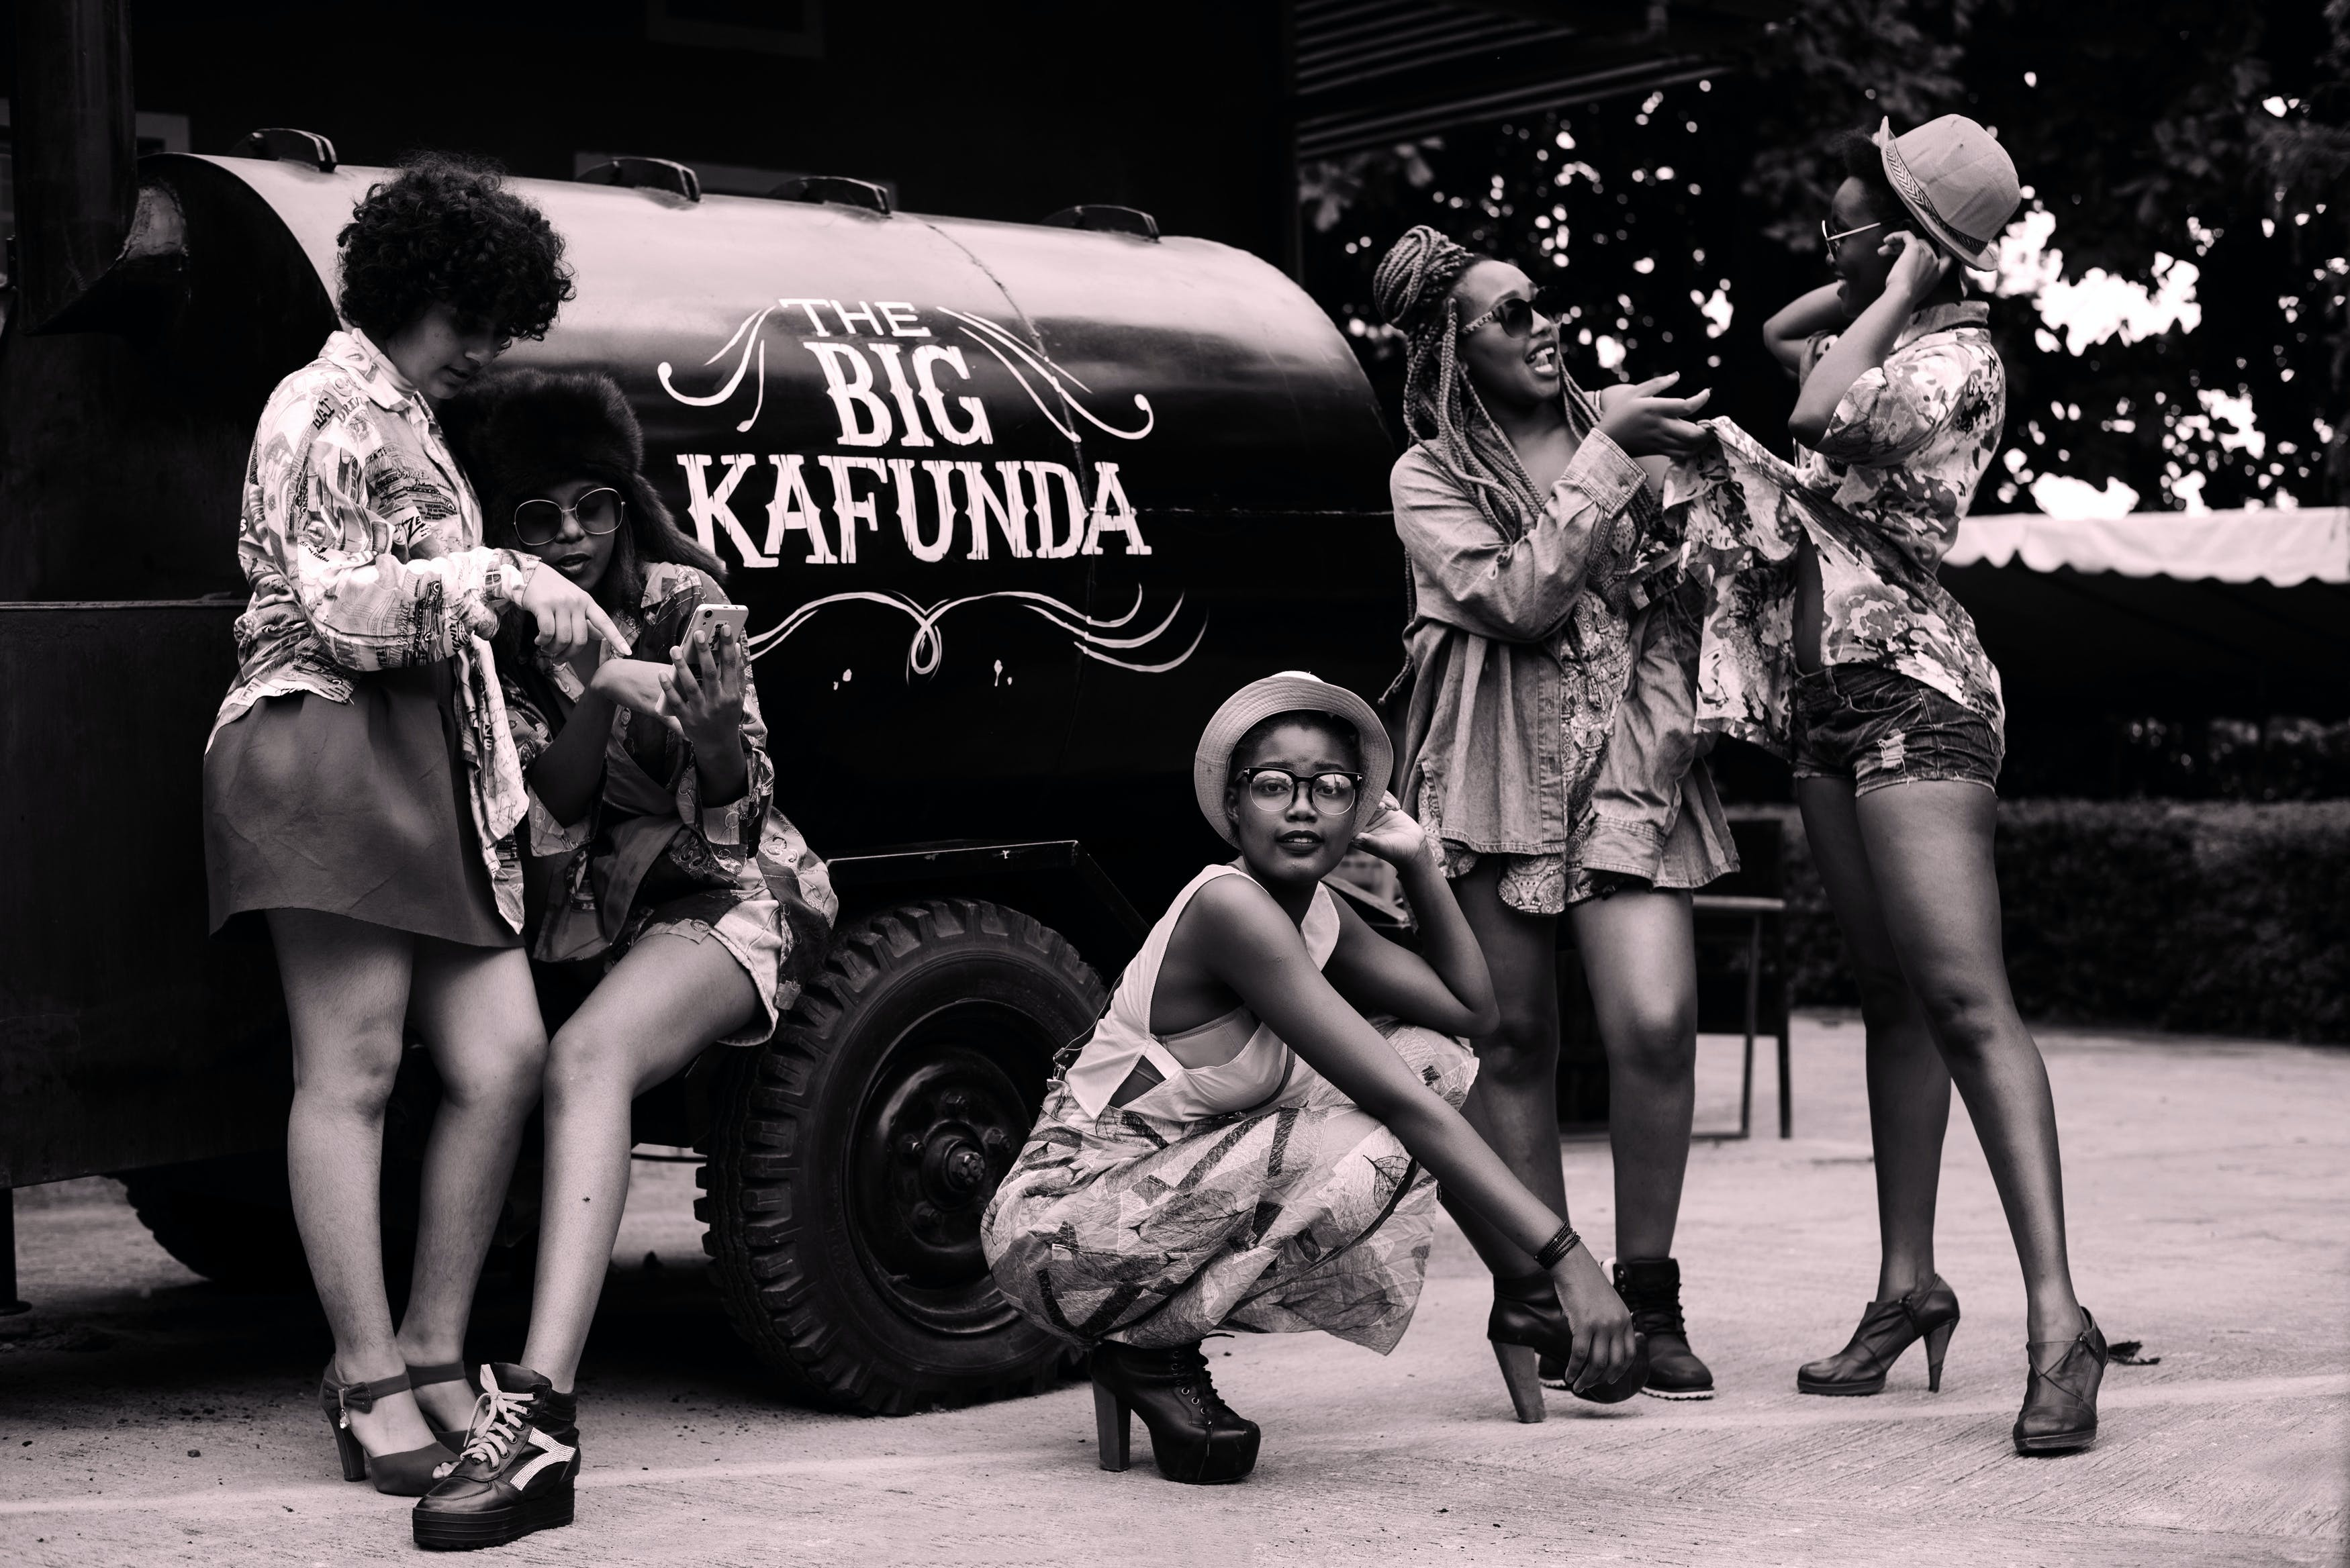 Women Standing Near the Big Kafunda Truck